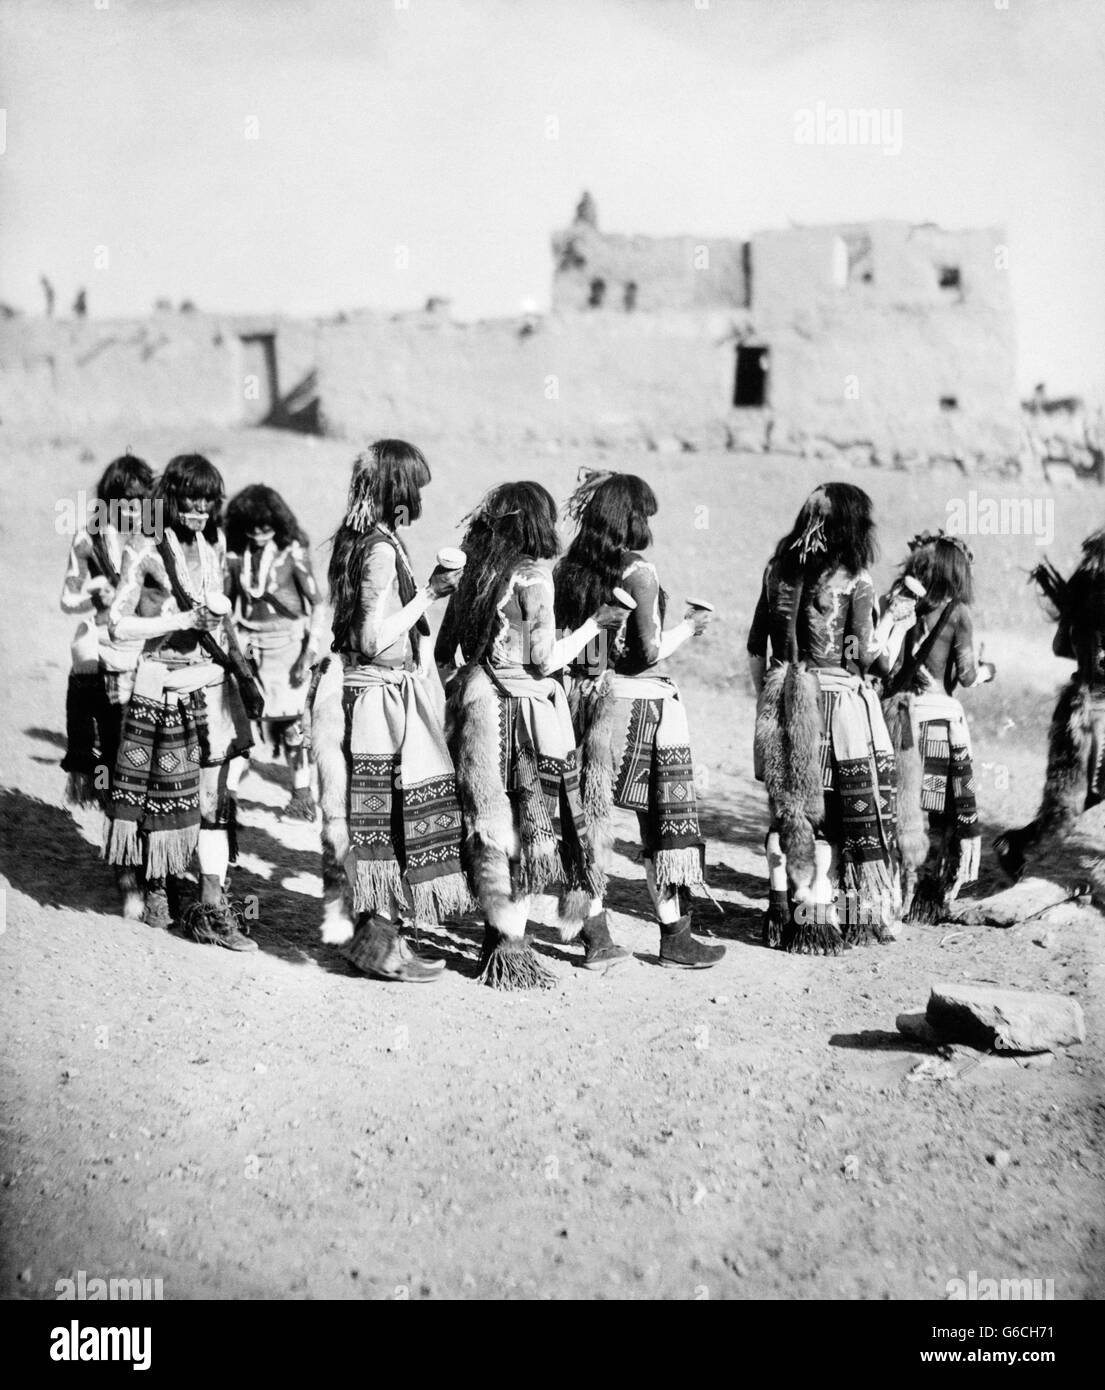 1890s 1896 GROUP OF NATIVE AMERICAN HOPI INDIANS SNAKE DANCE THE ANTELOPE MARCH ORAIBI PUEBLO NAVAJO COUNTY ARIZONA - Stock Image